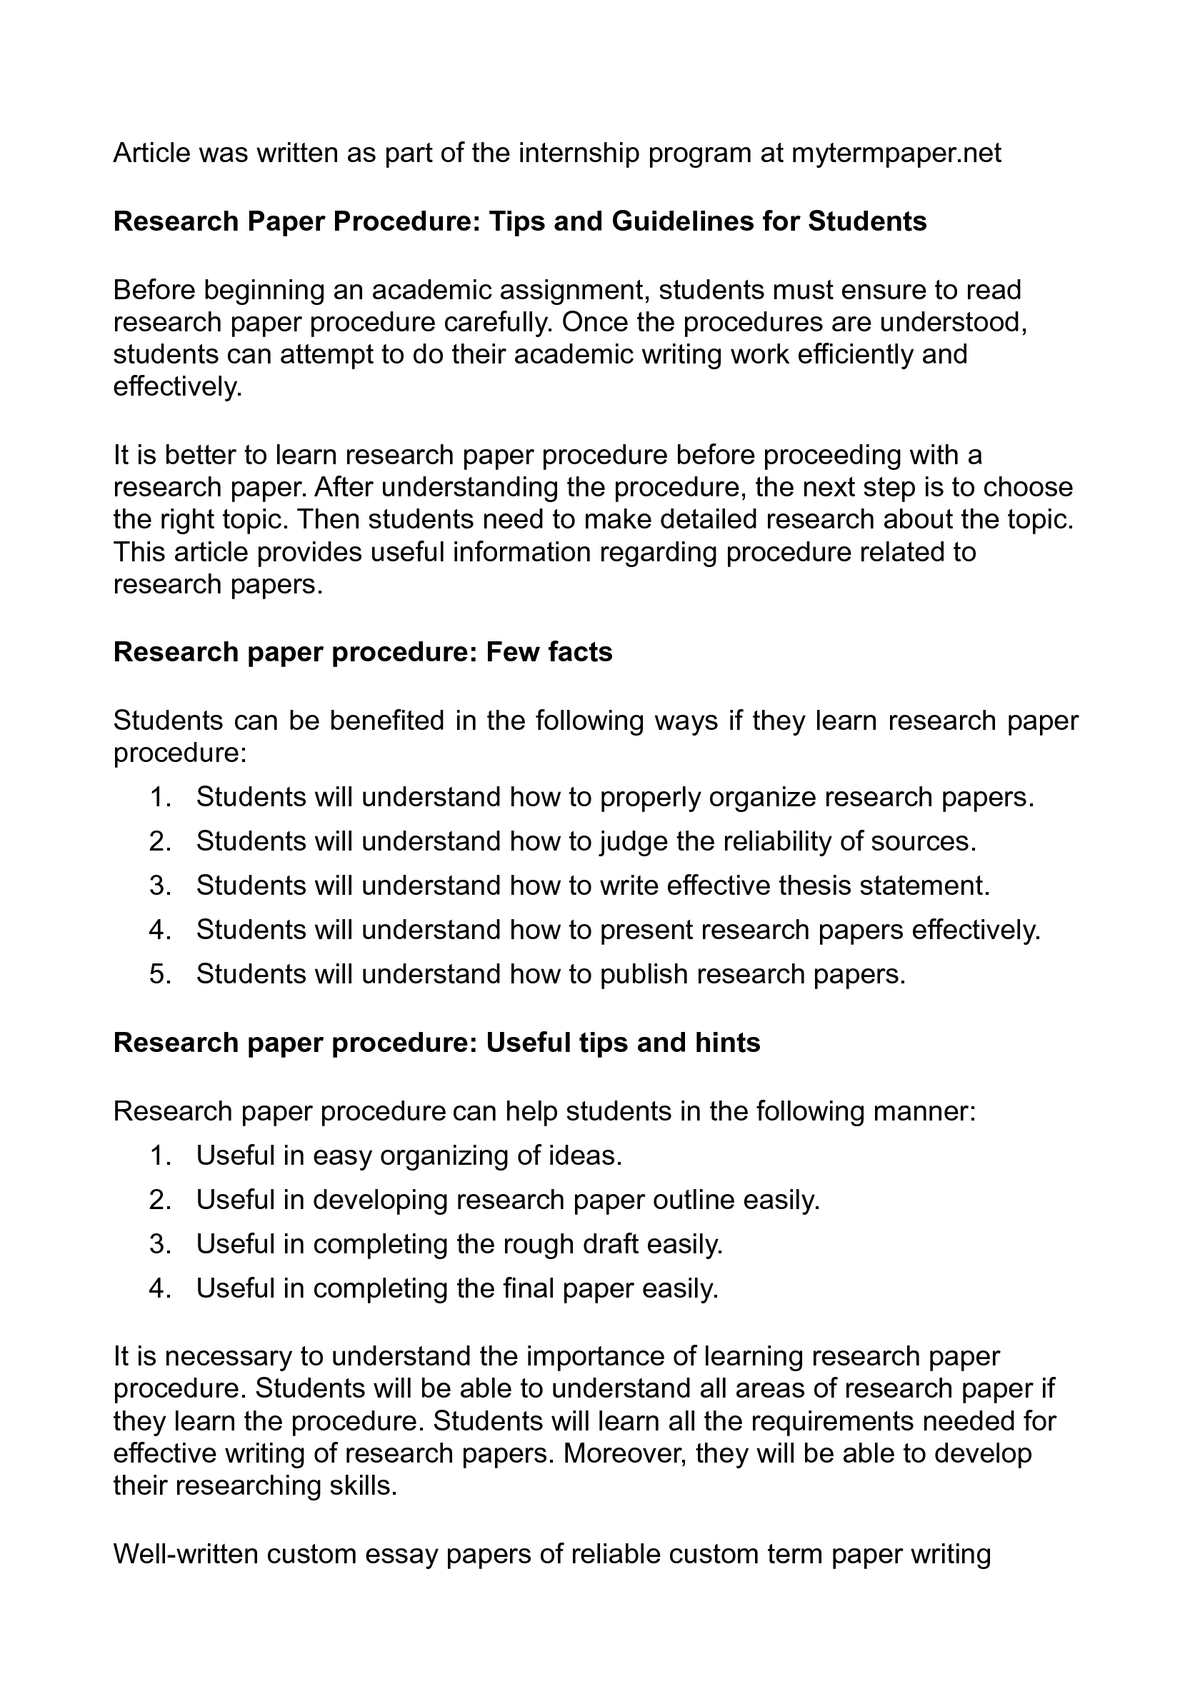 008 Developing Research Paper Outline Singular A Full